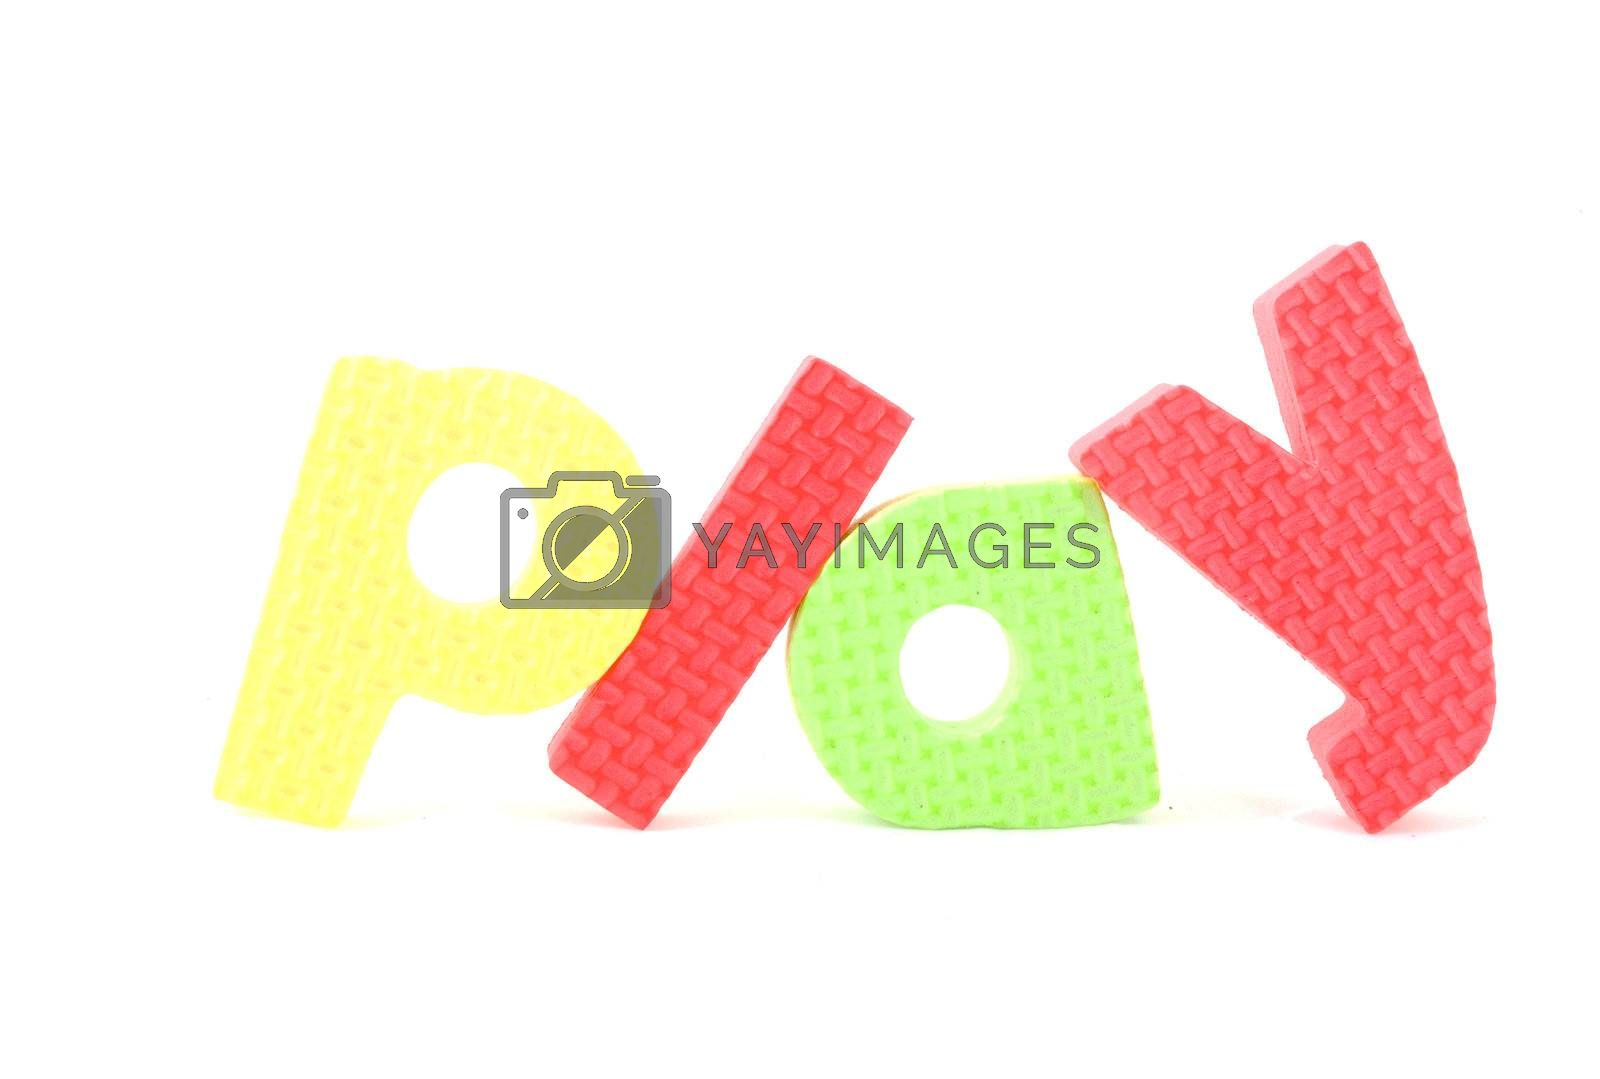 Royalty free image of colorful letters with play isolated on white background  by ladyminnie